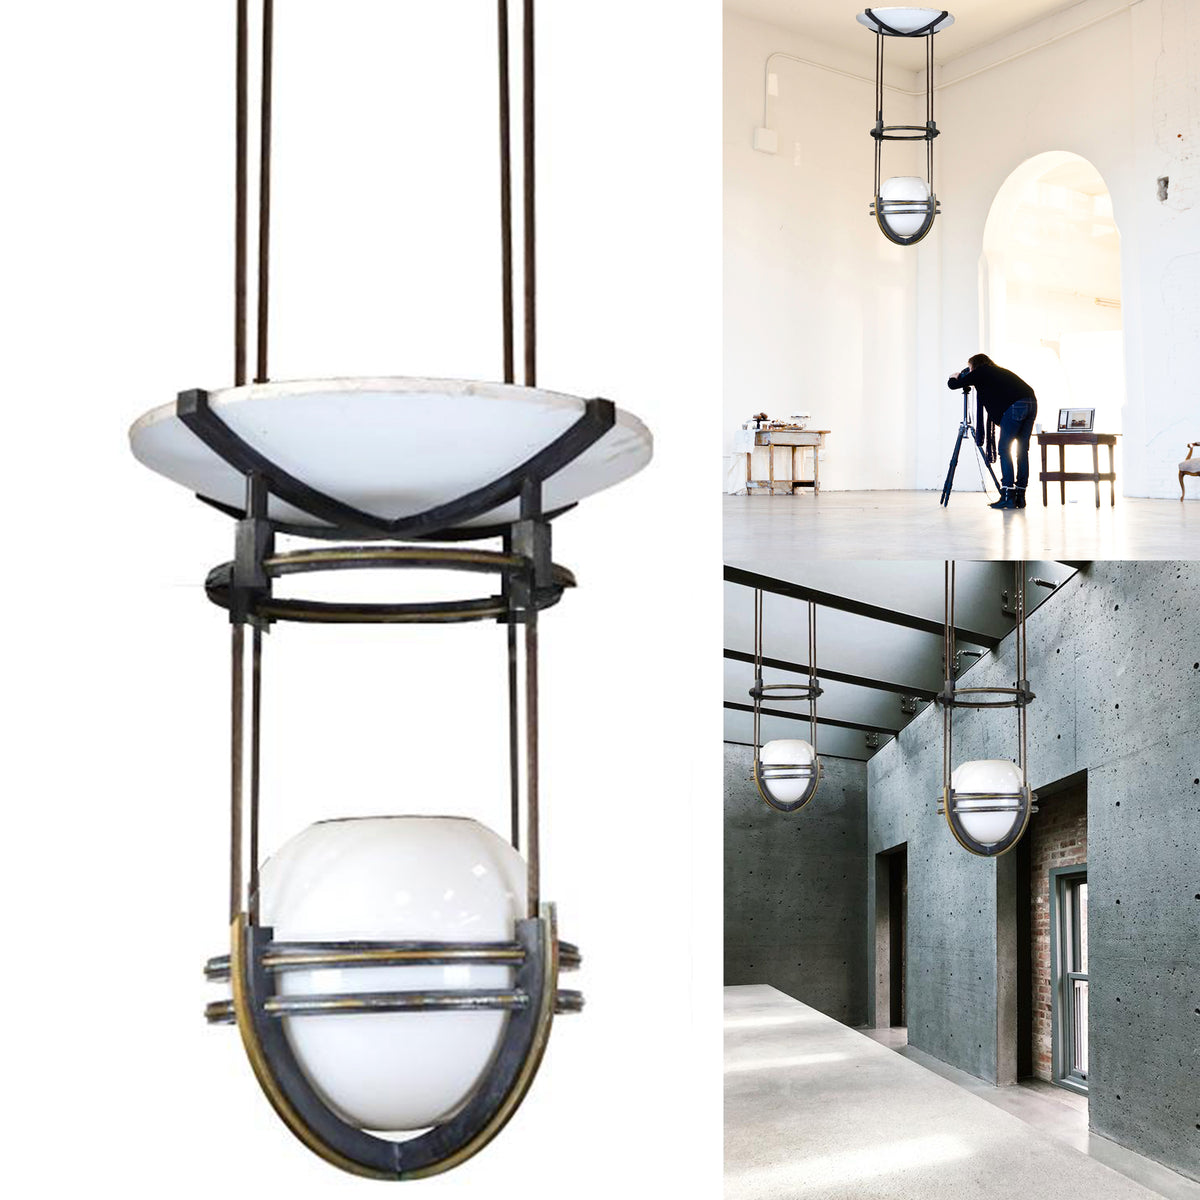 Large Art Deco Style Suspended Lighting